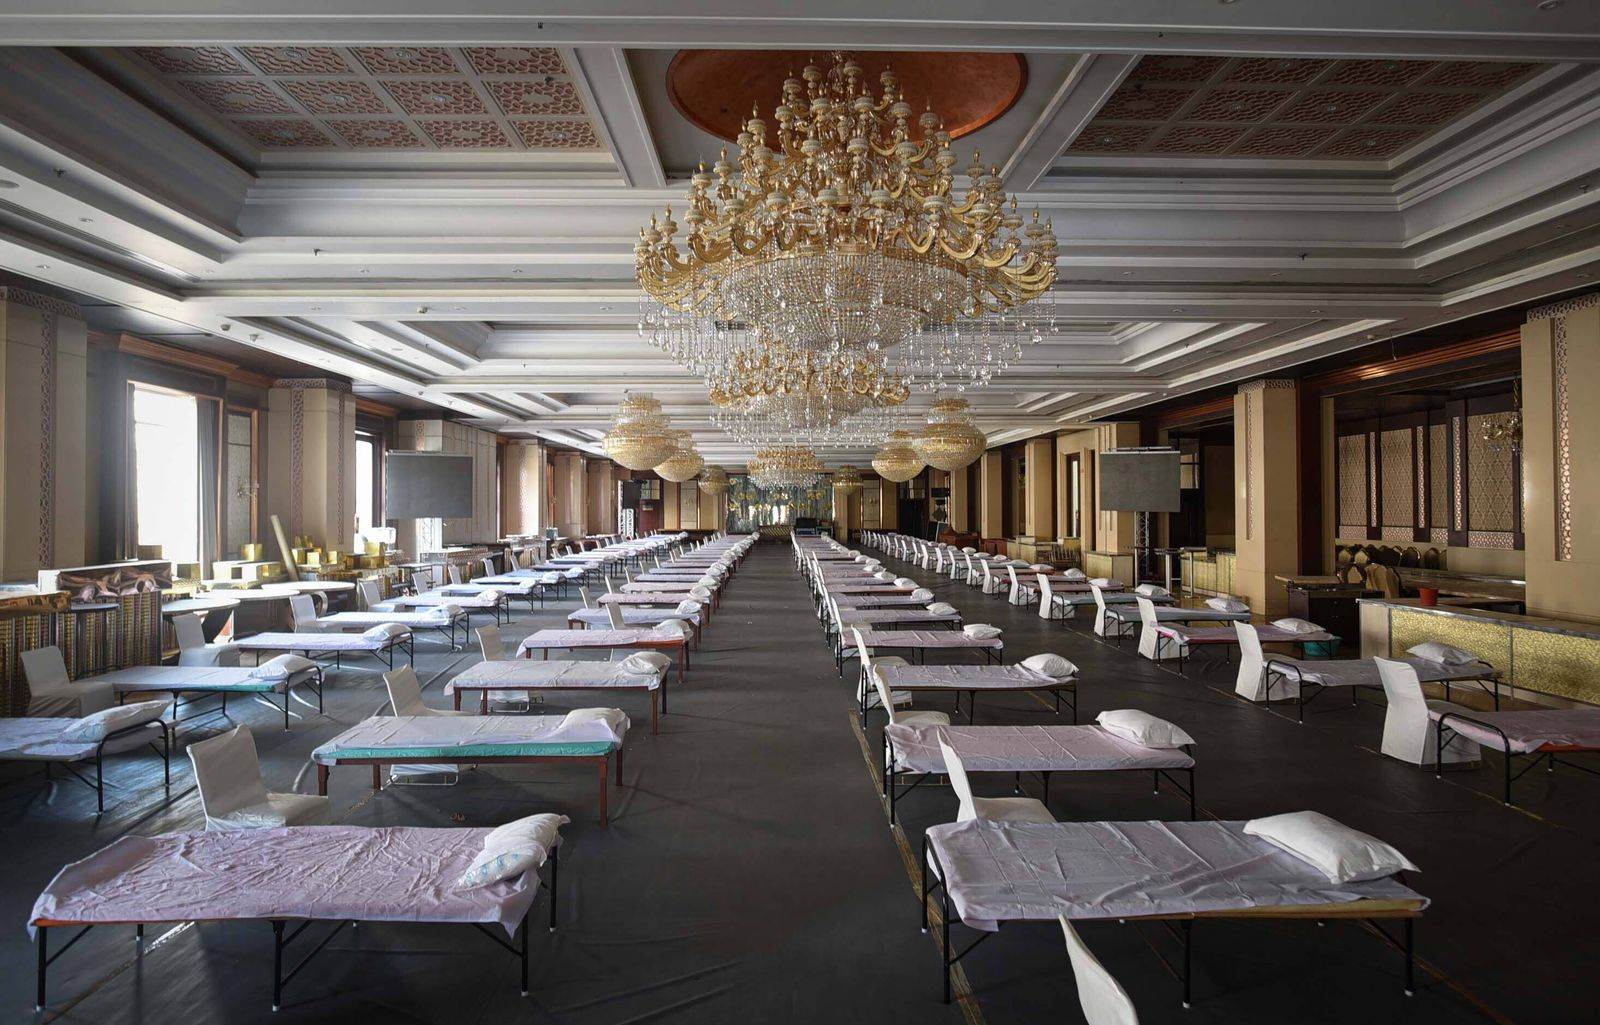 NEW DELHI, INDIA - JULY 5: Beds placed in the hall at The Heritage Grand Banquet which has been requisitioned for use a